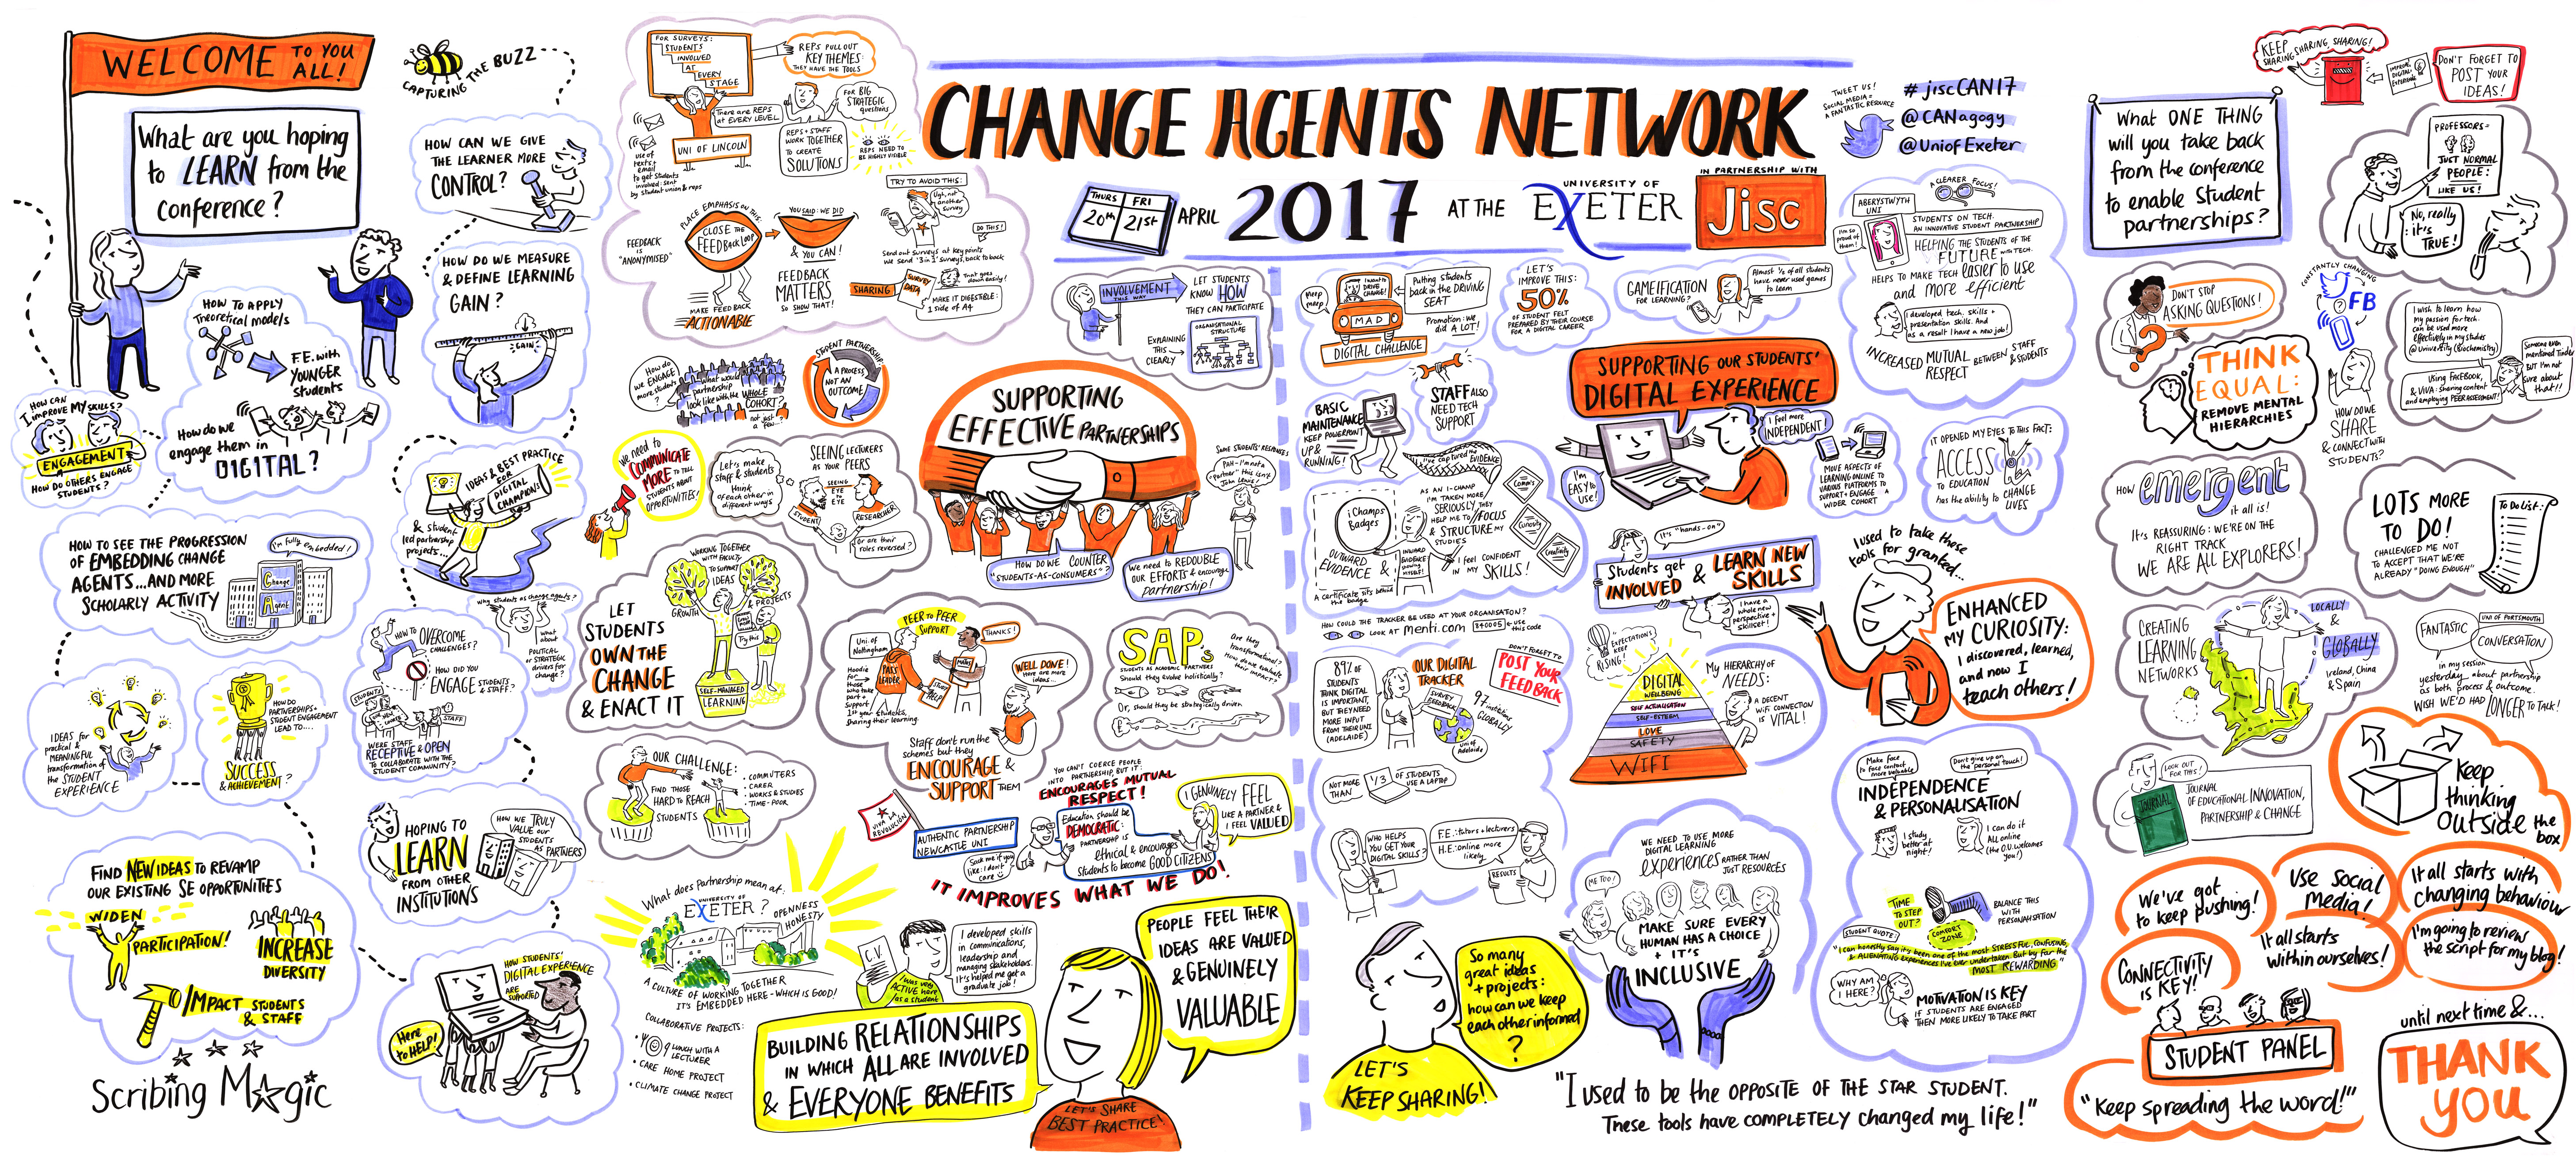 can 2017 day 1 change agents network